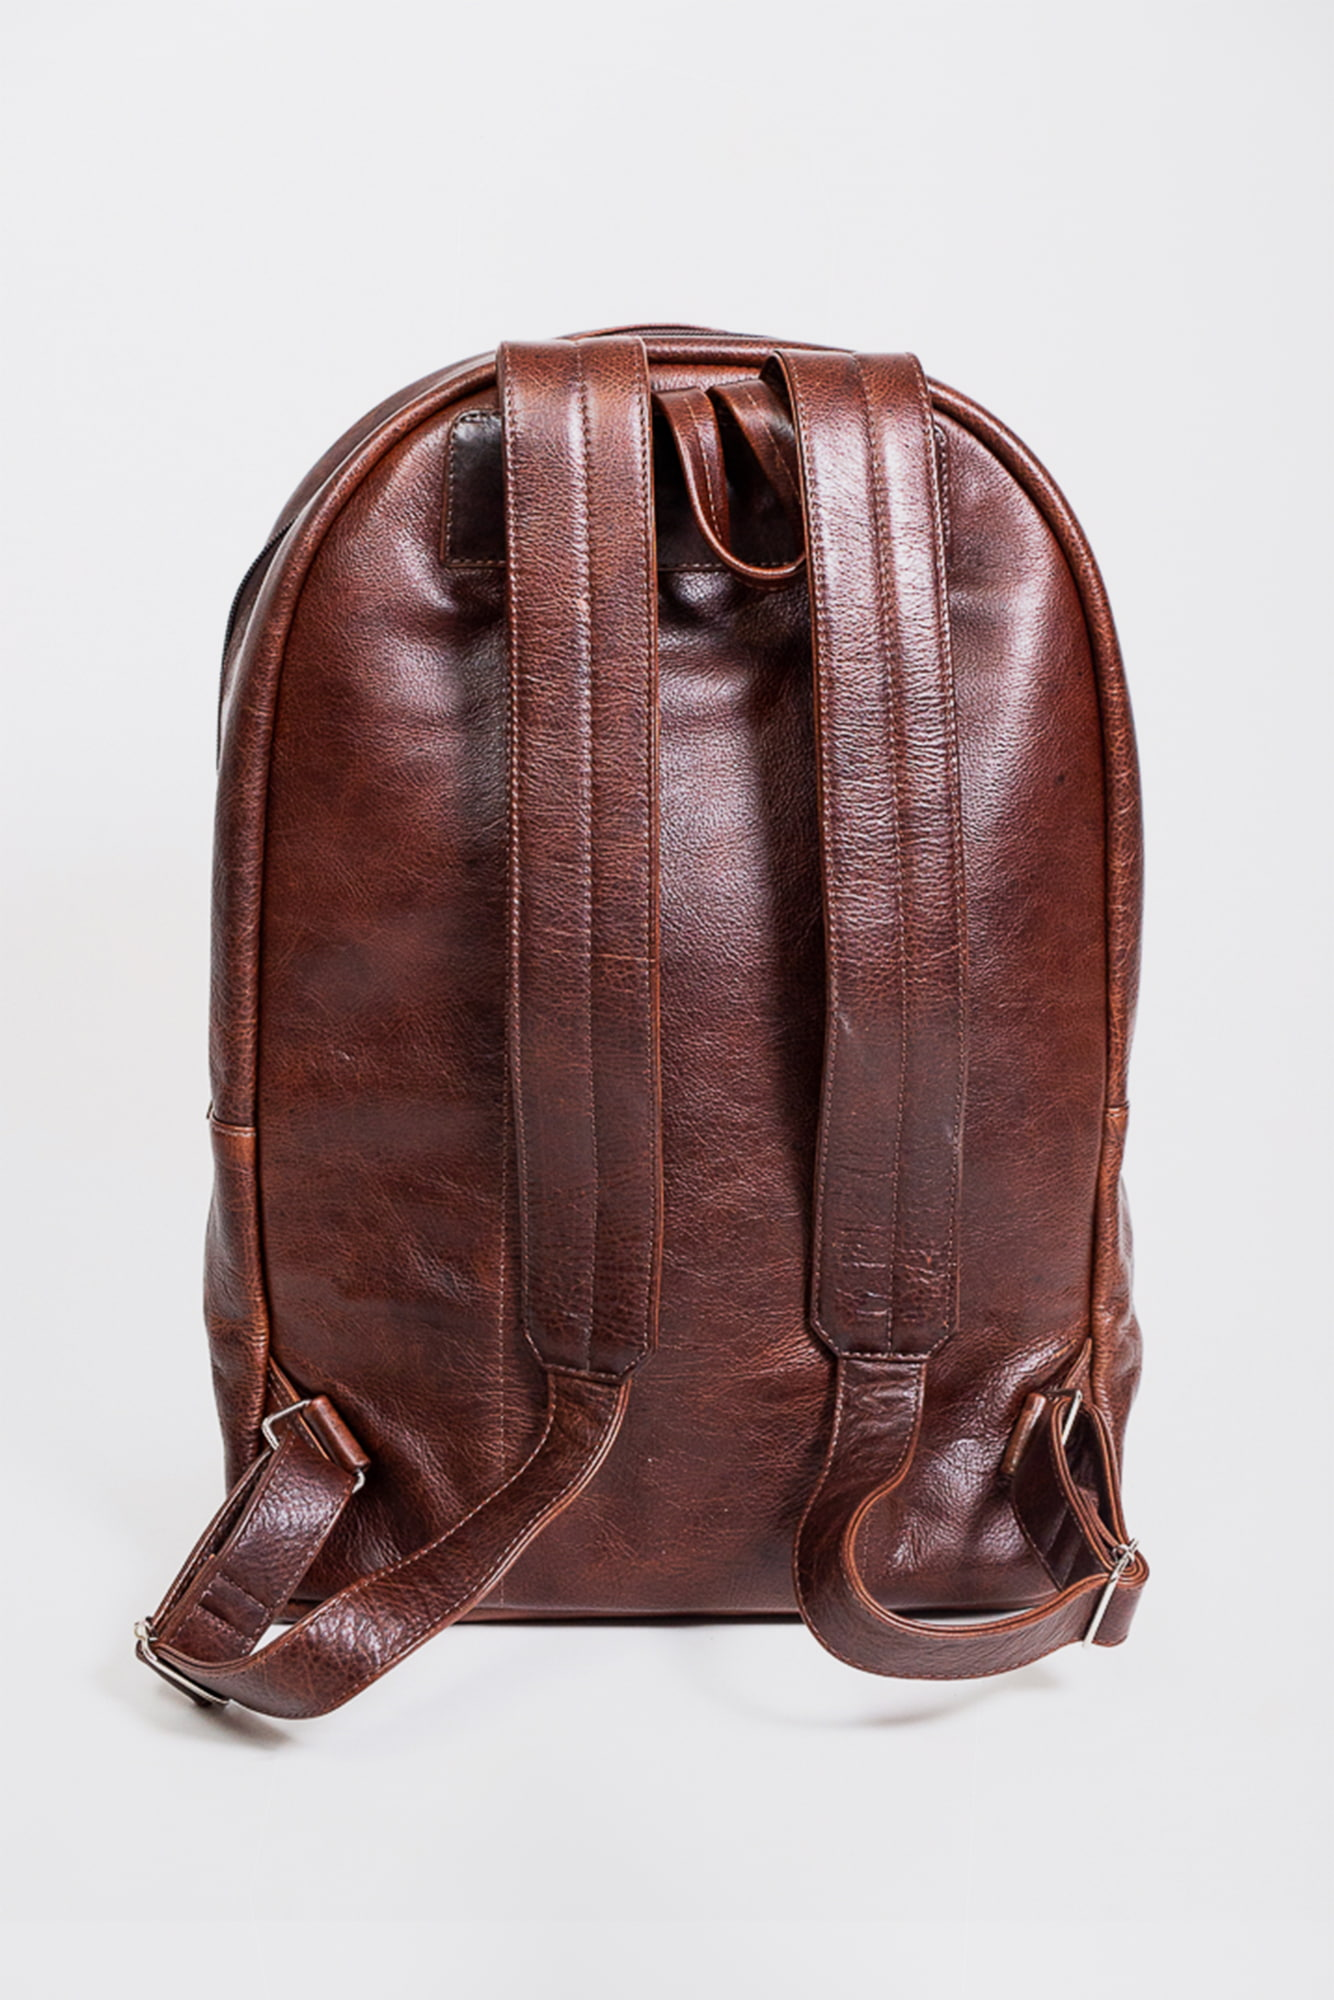 Mochila Urbô Leather Milano Brown